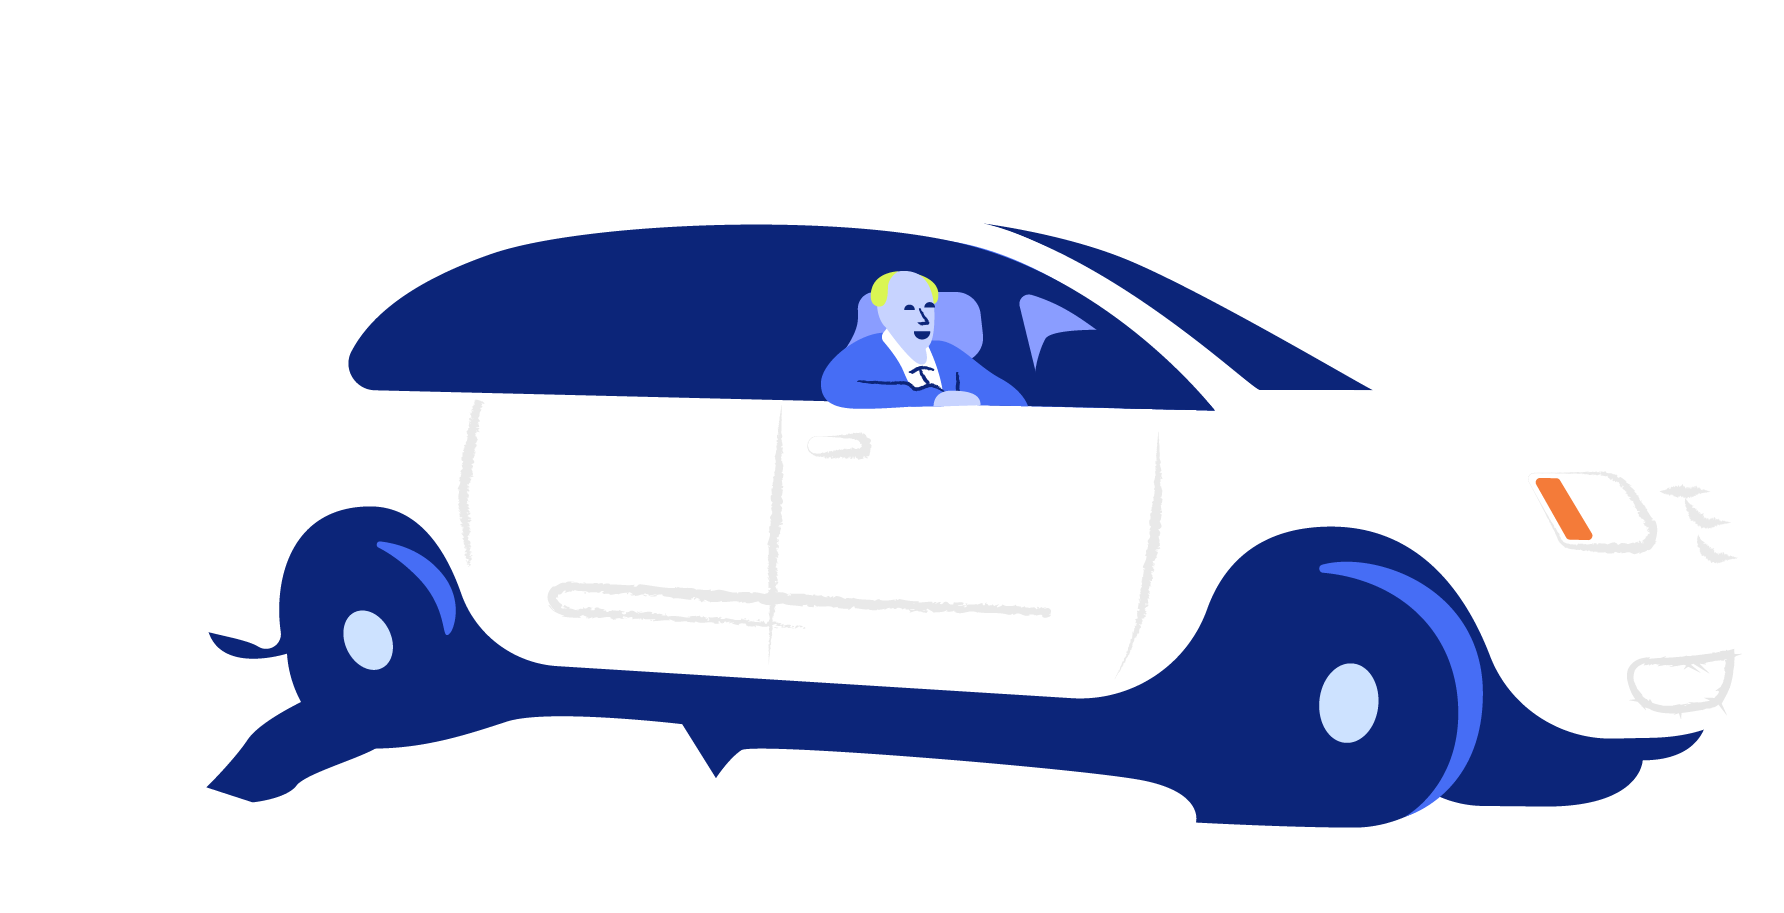 Driving clipart commuter. Ways to commute lowcountry